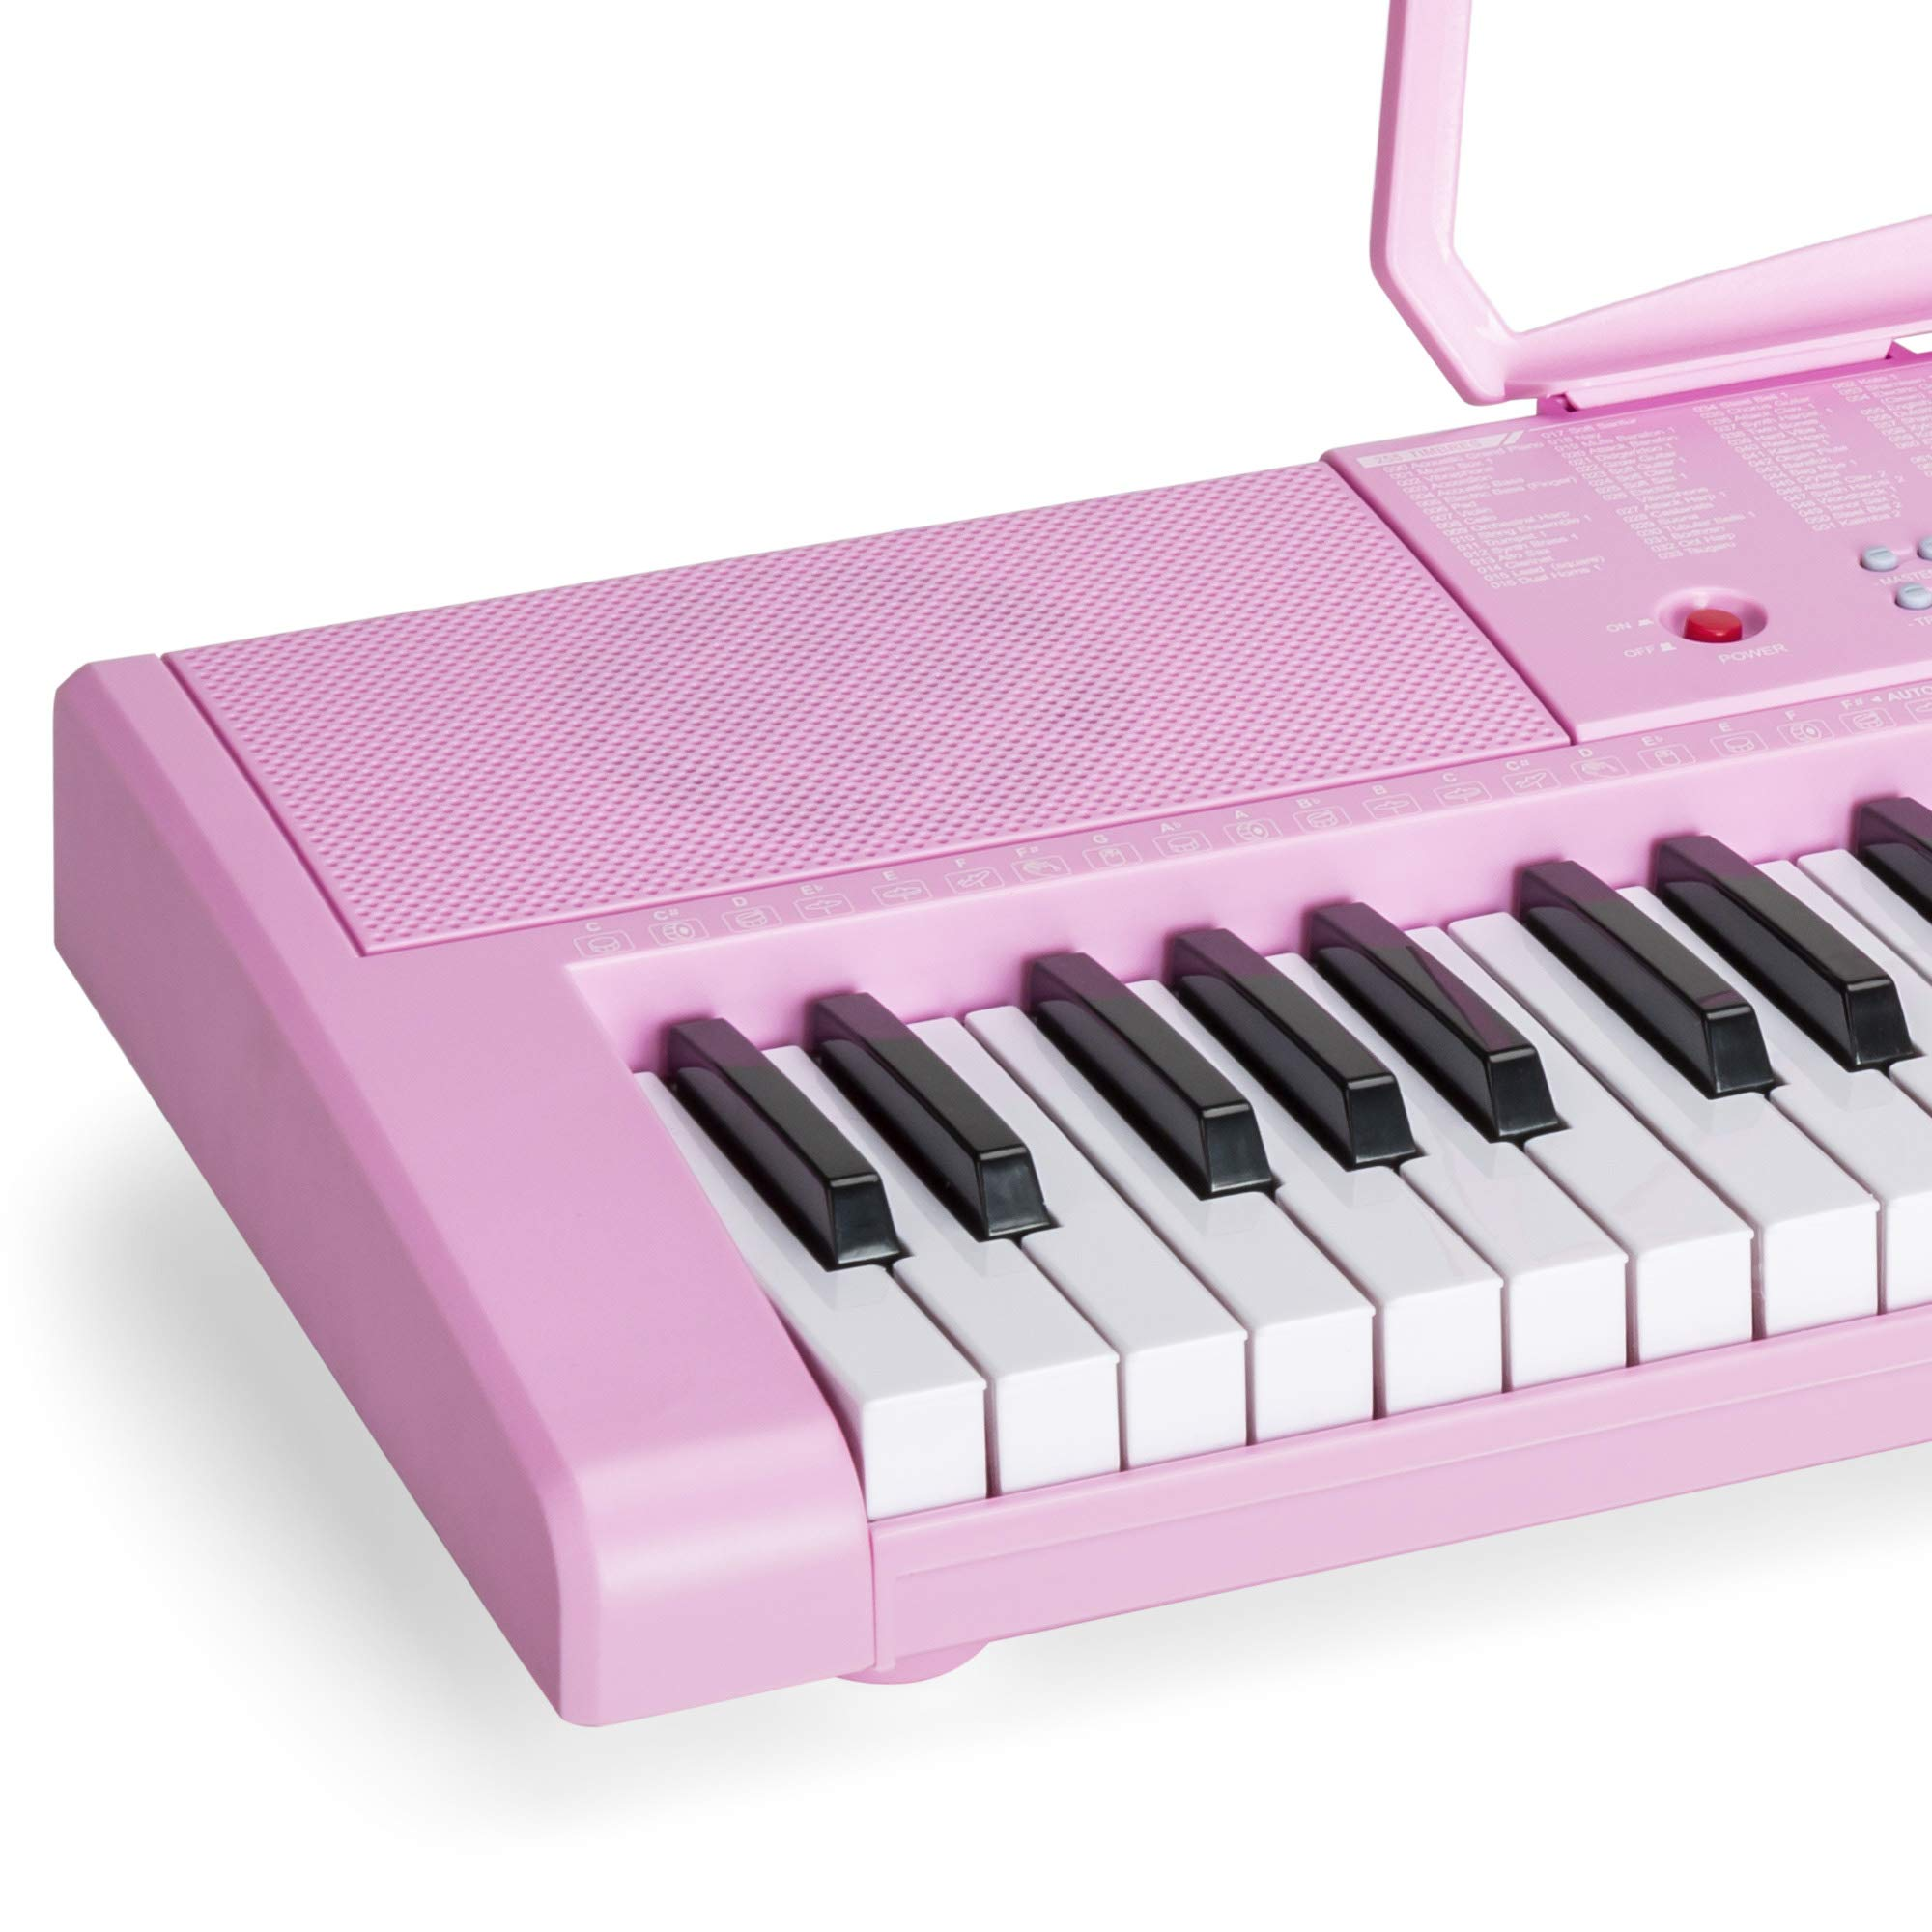 Best Choice Products 61-Key Portable Electronic Keyboard Piano with LED Screen, Record & Playback Function, Microphone, Headphone Jack (Pink) by Best Choice Products (Image #5)